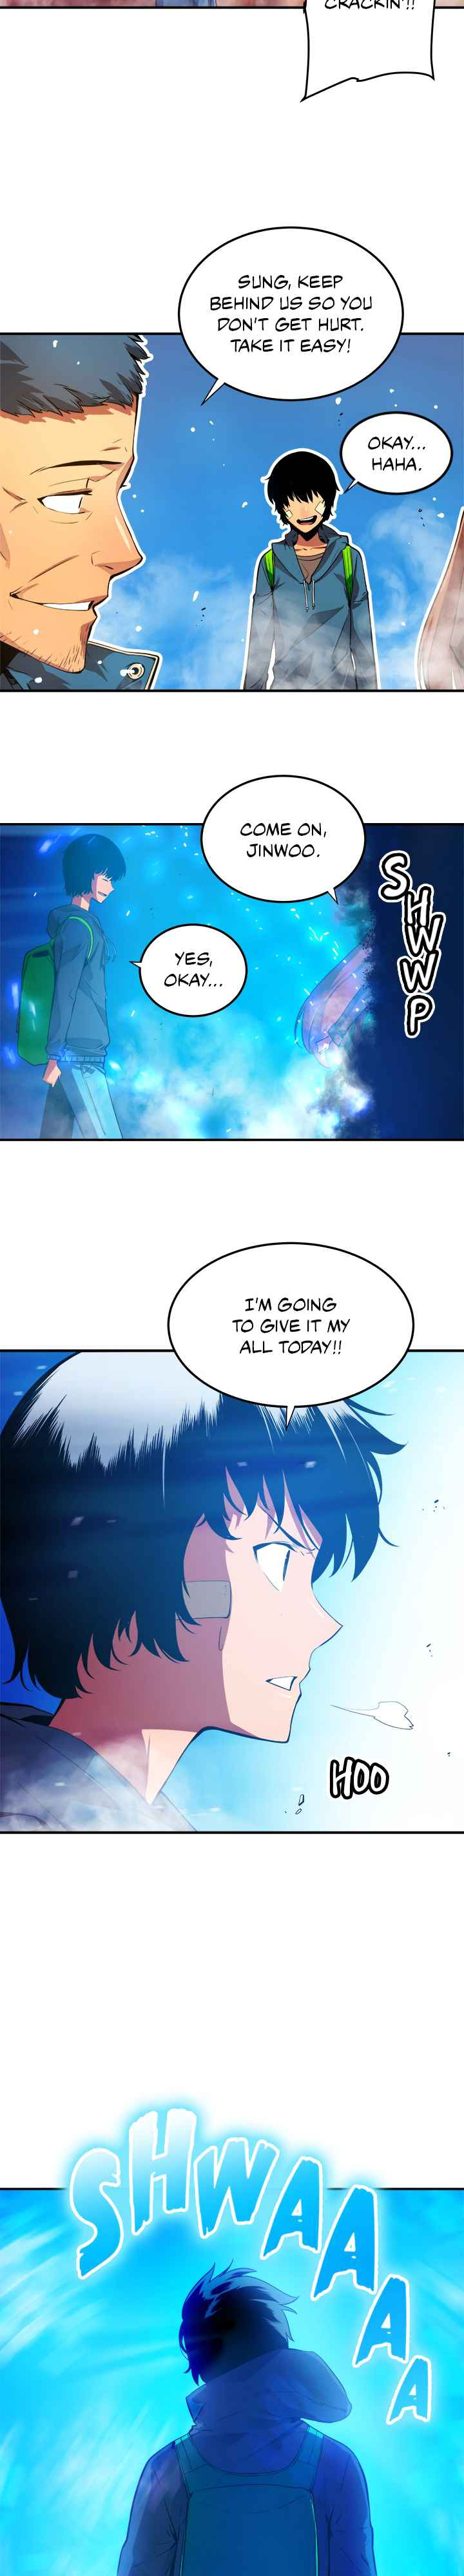 Solo Leveling Chapter 1 Page 20